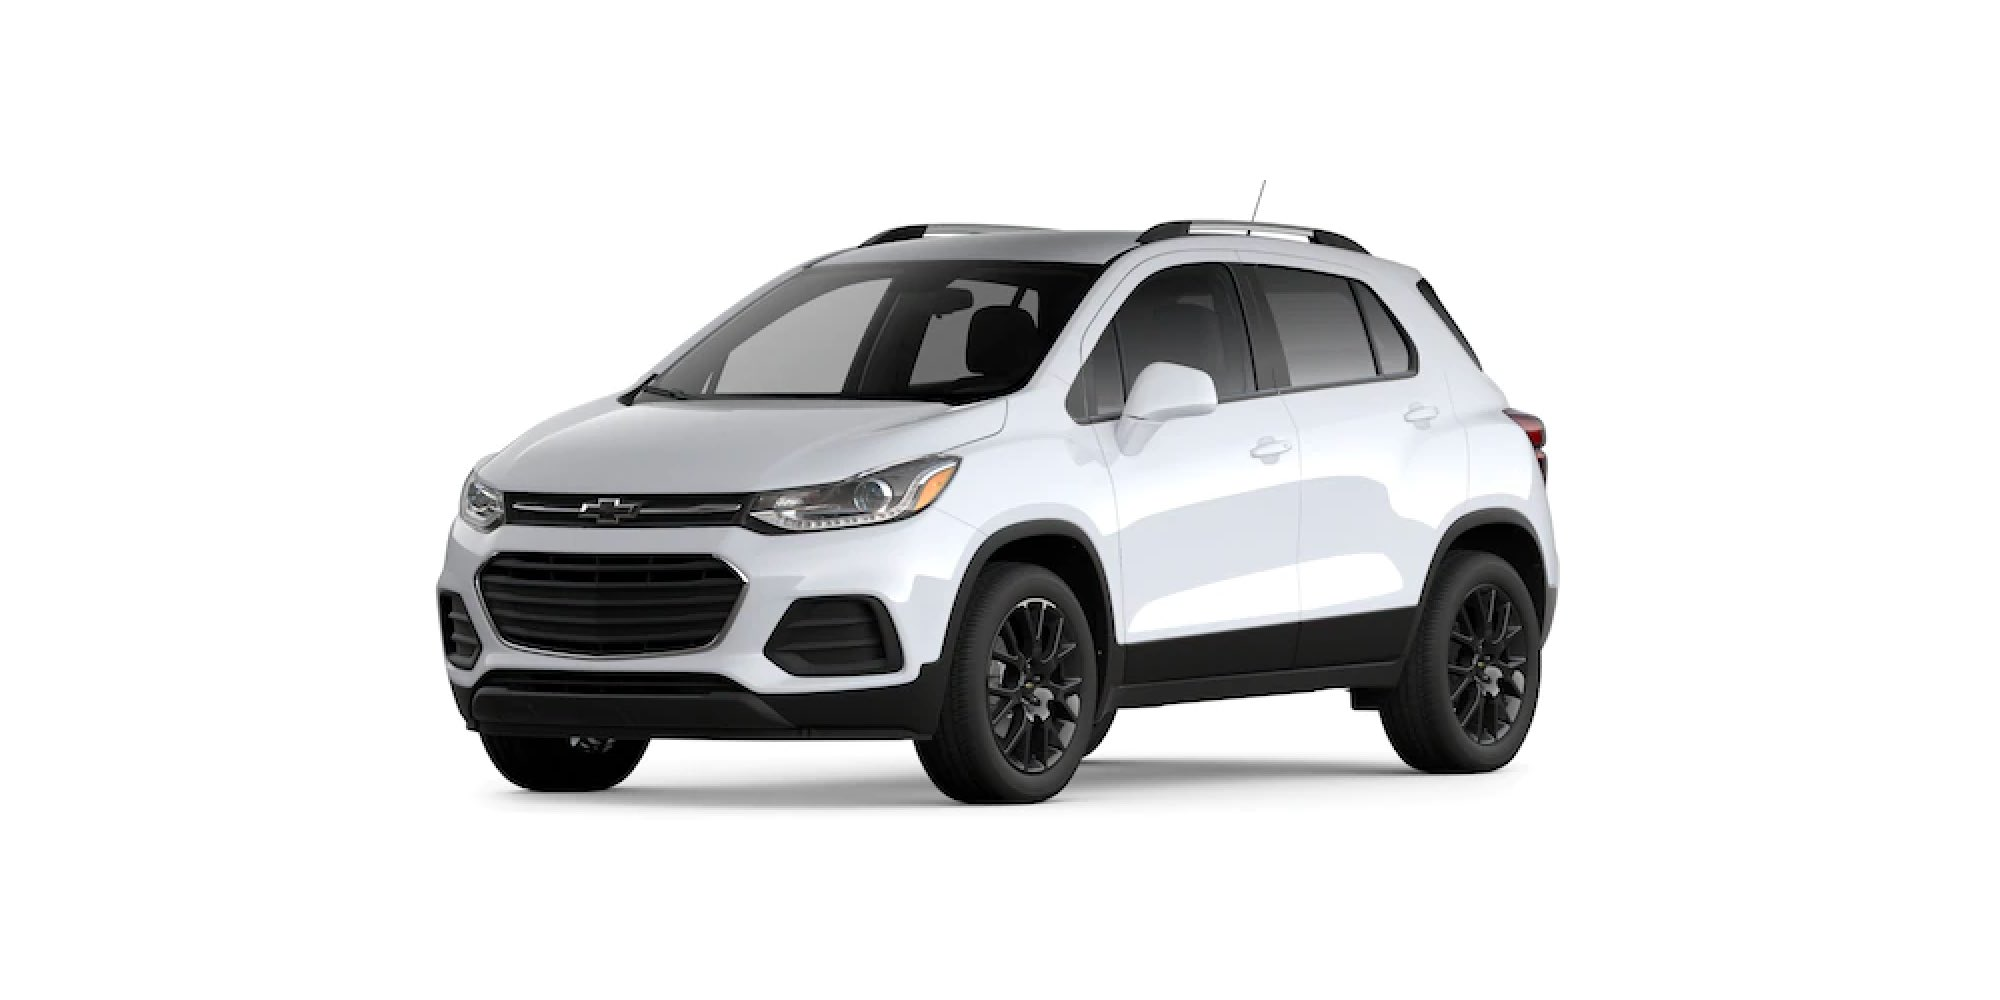 2021 Chevy Trax in Summit White